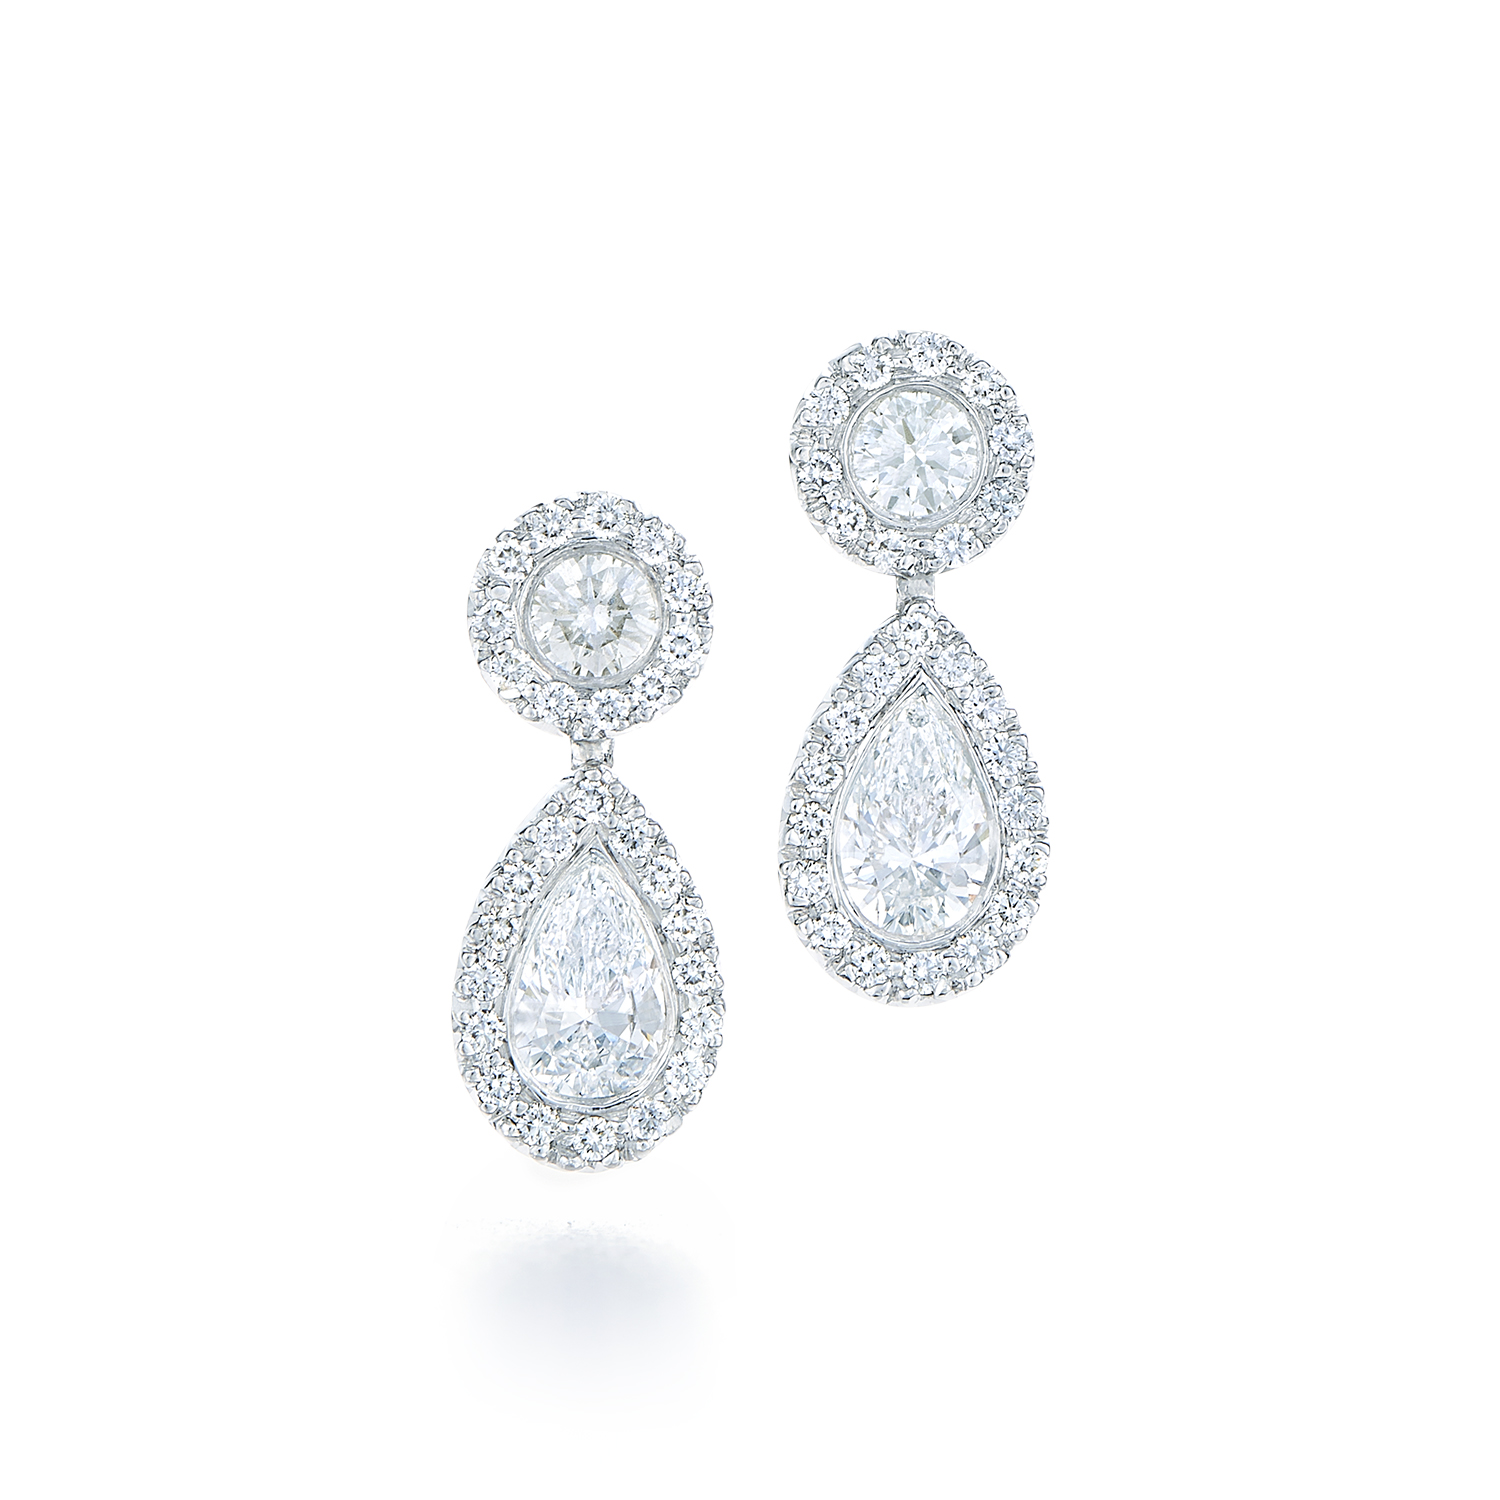 zubiafashions jewellery moscow shopping in canada jewelry dubai earrings store online